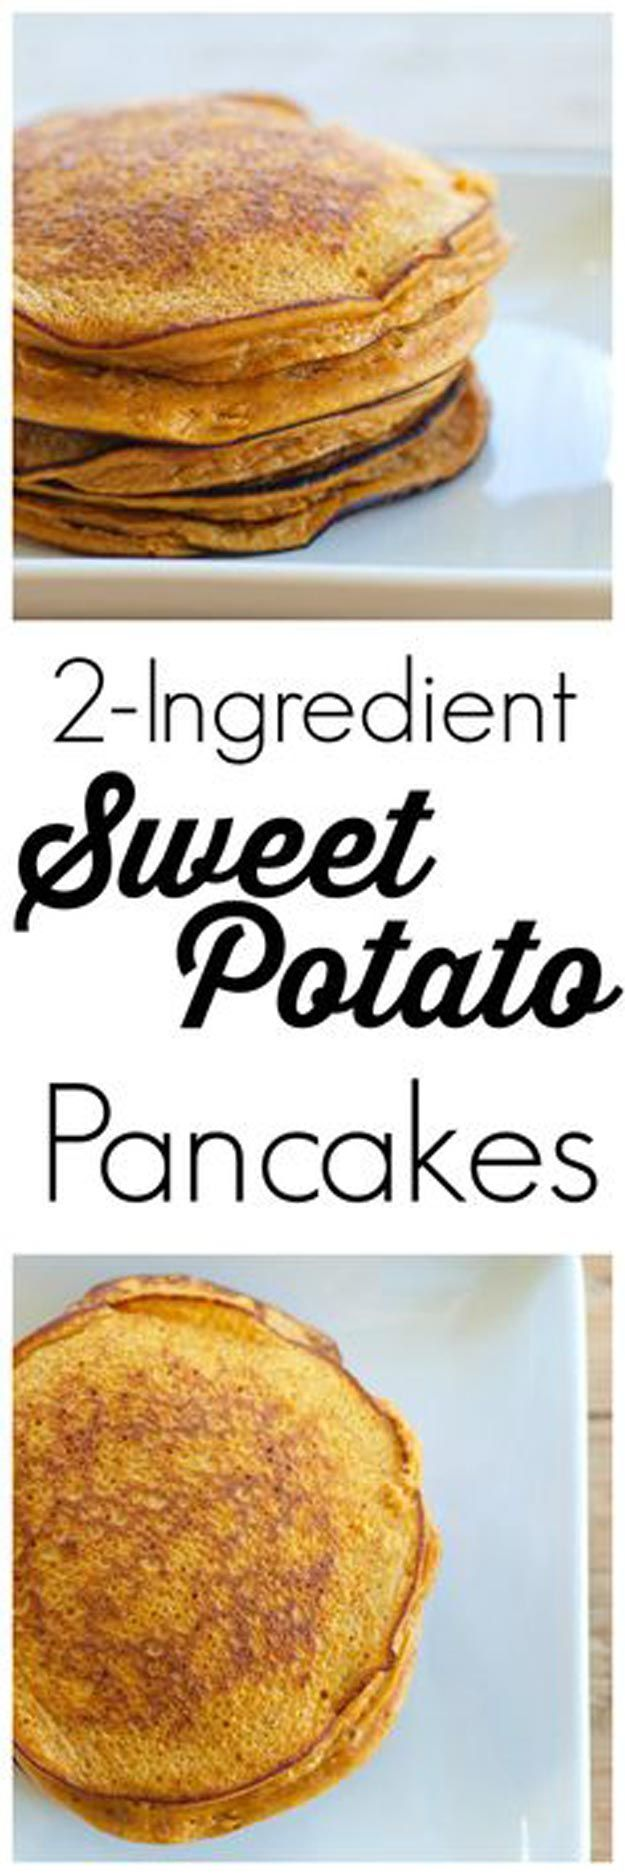 2-Ingredient Sweet Potato Pancake | Super Yummy and Healthy Homemade Recipes by Pioneer Settler at http://pioneersettler.com/sweet-potato-recipes-homesteader/